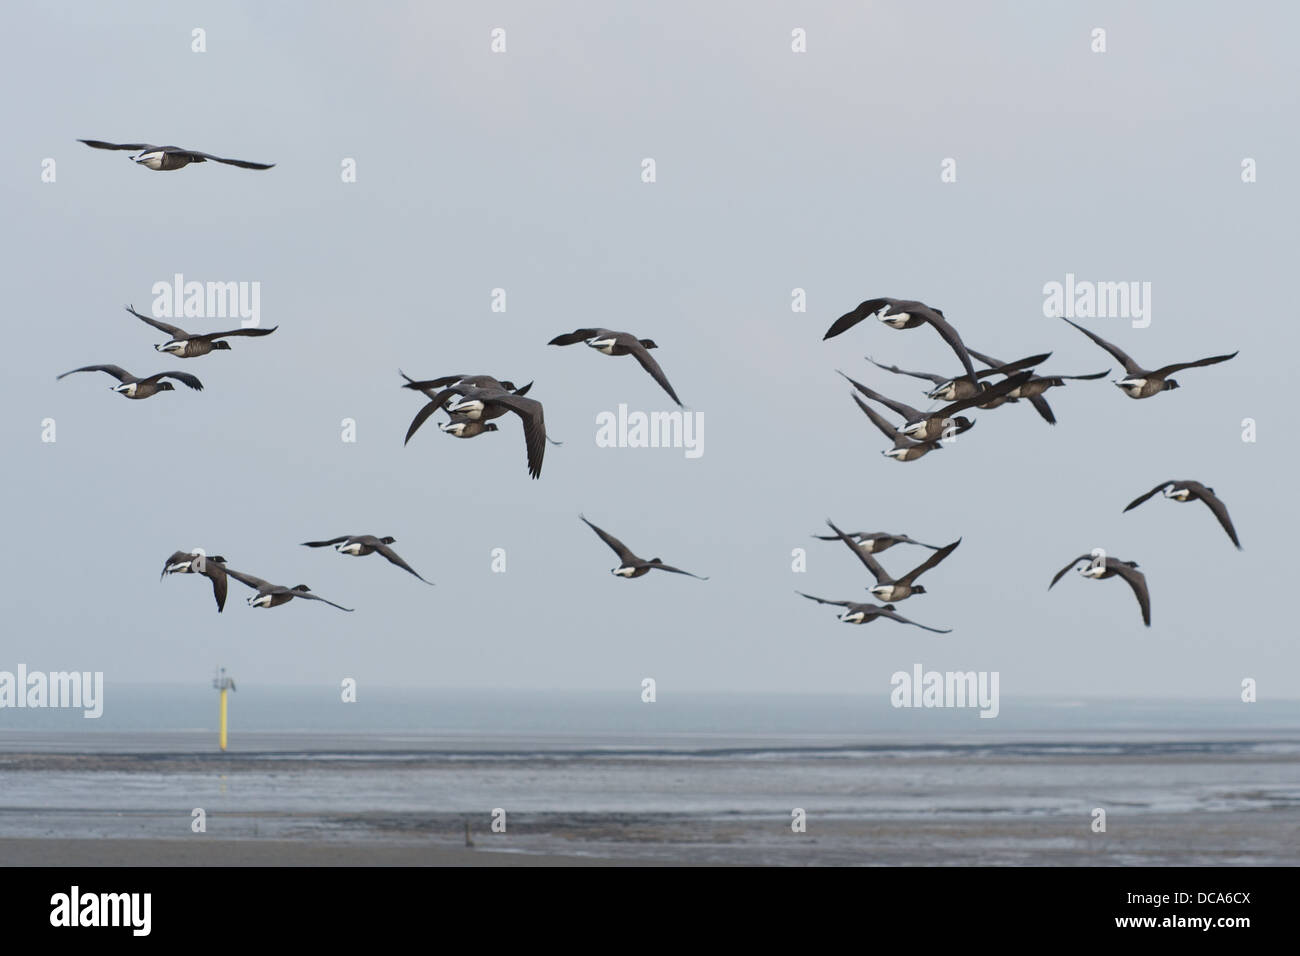 Many brent gooses flying above the wadden sea - Stock Image